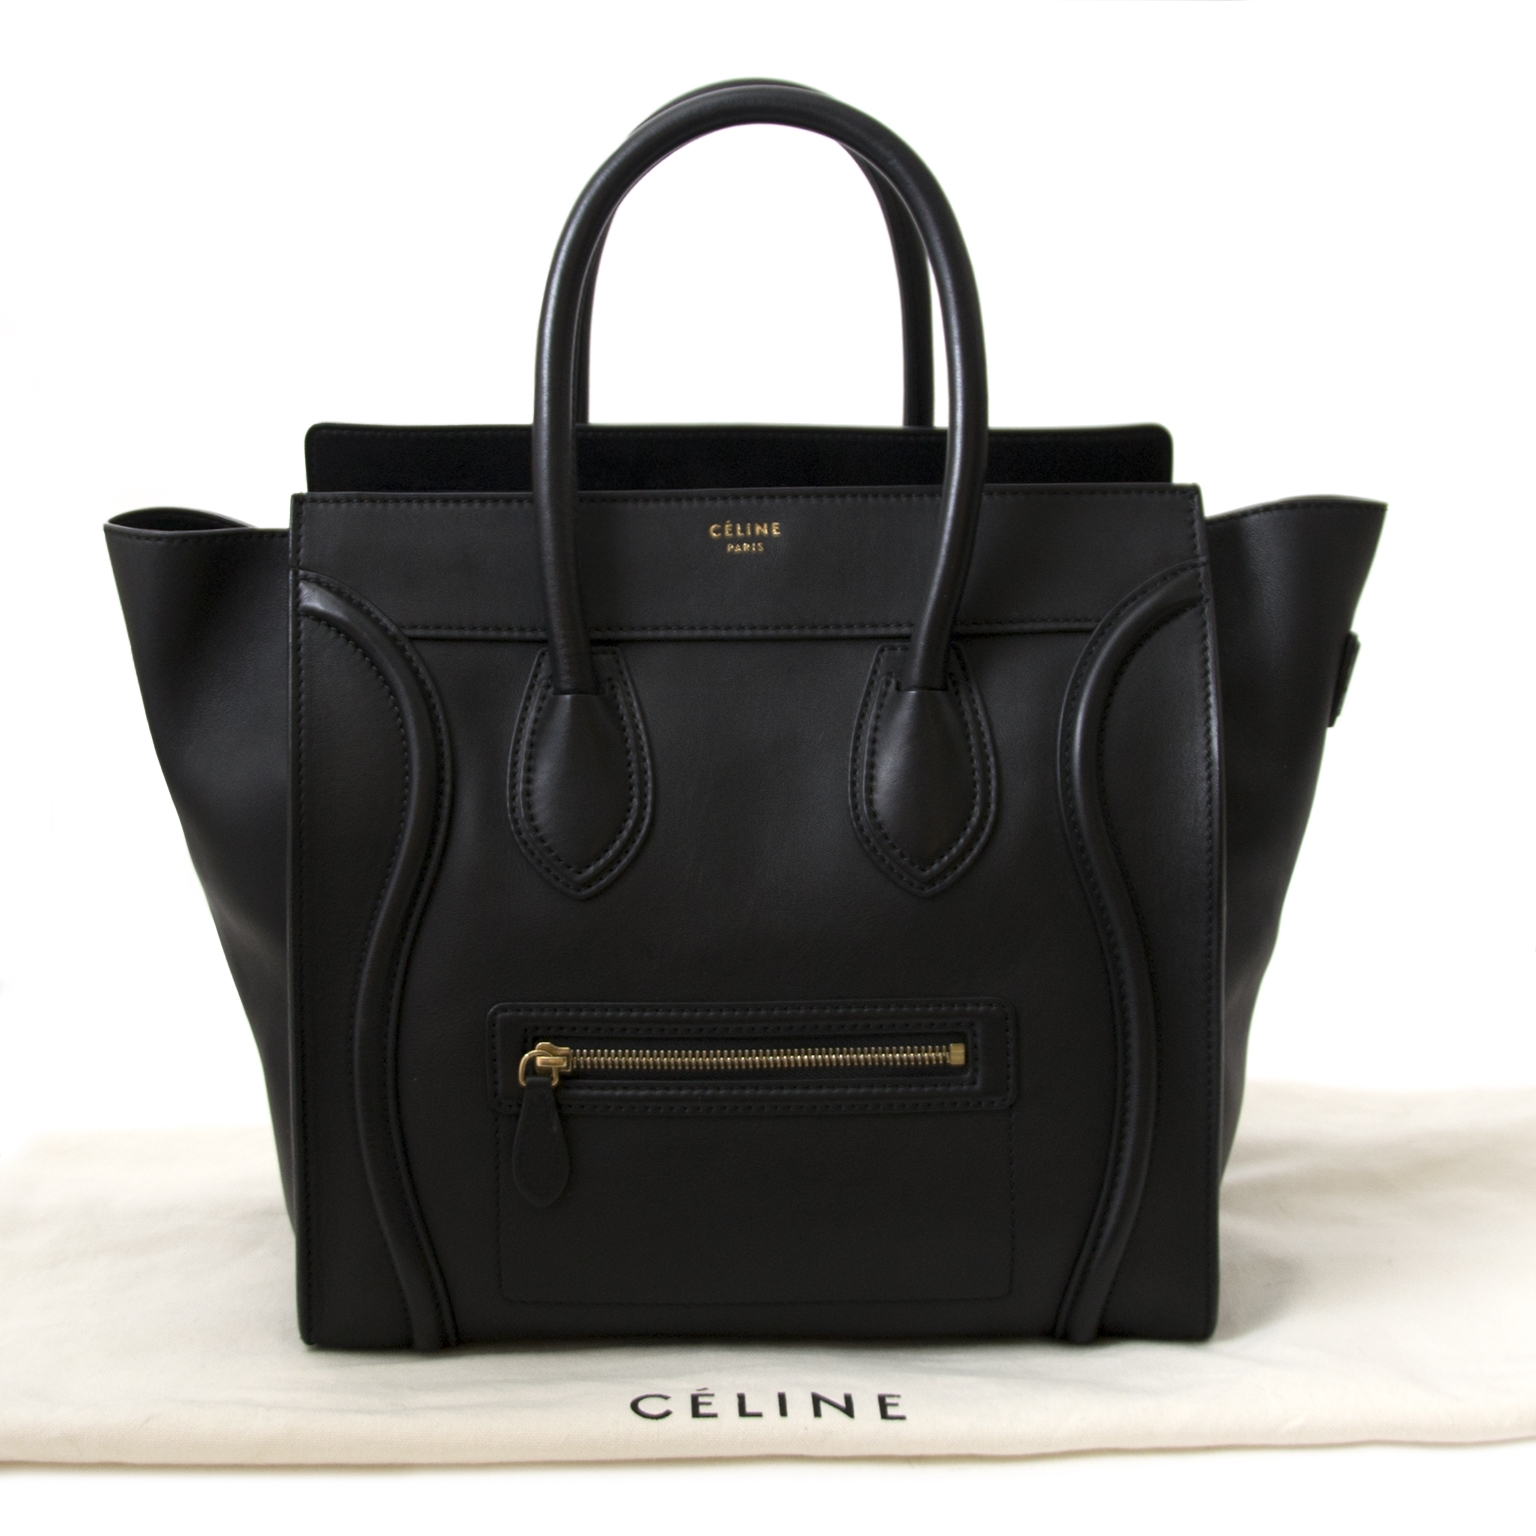 Céline Black Mini Luggage Bag for sale online at Labellov secondhand in Antwerp